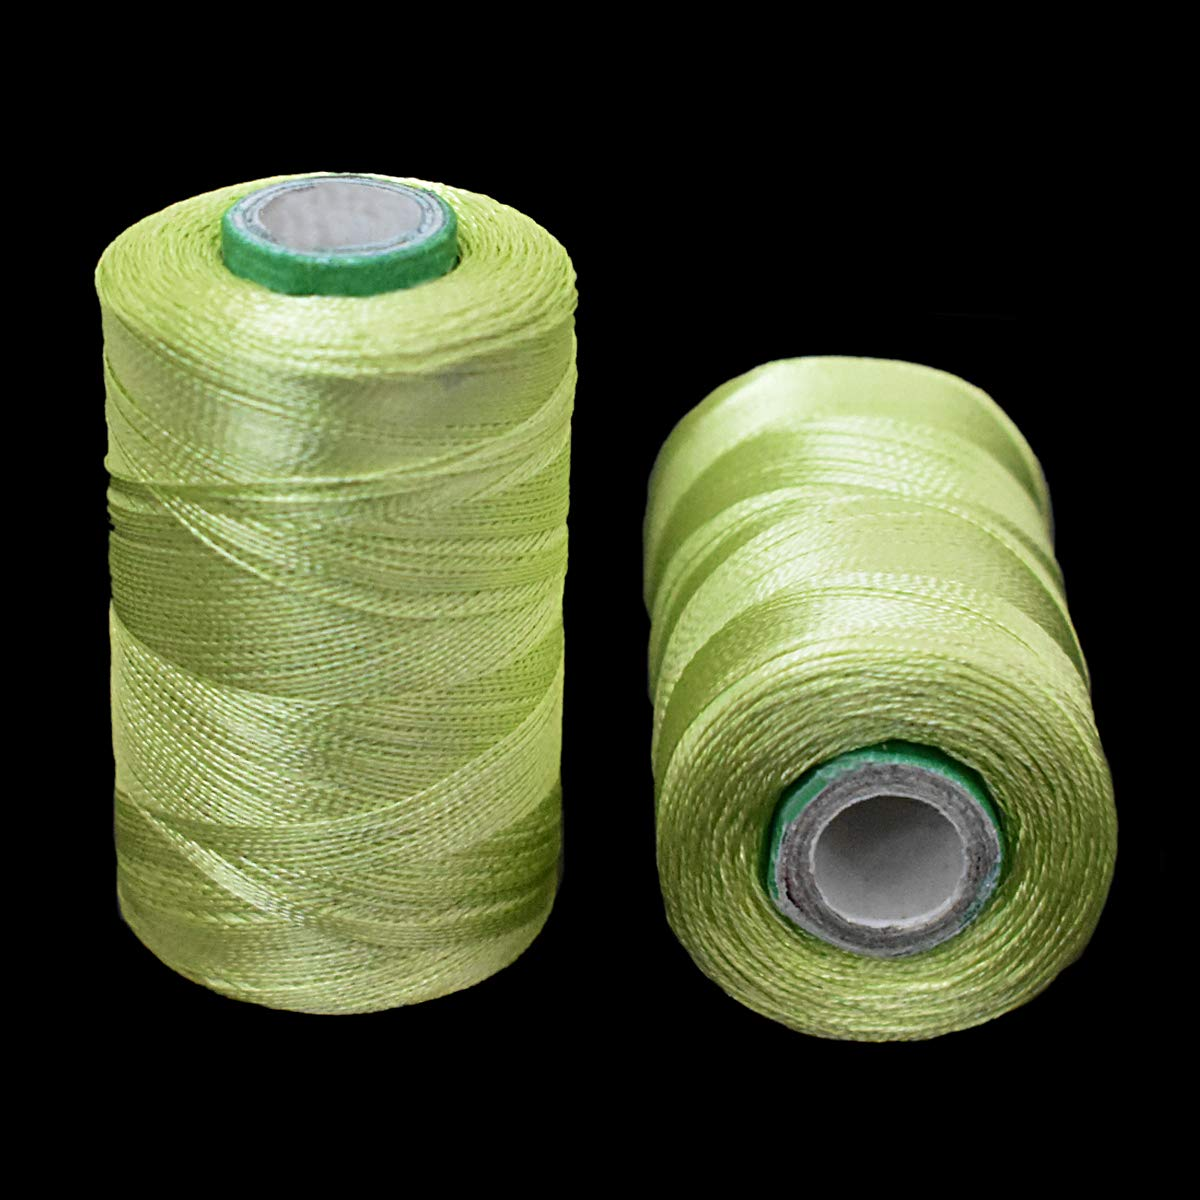 Silk Embroidery Threads for Embroidery Jewellery Craft Making 2 Rolls,Light Green Color